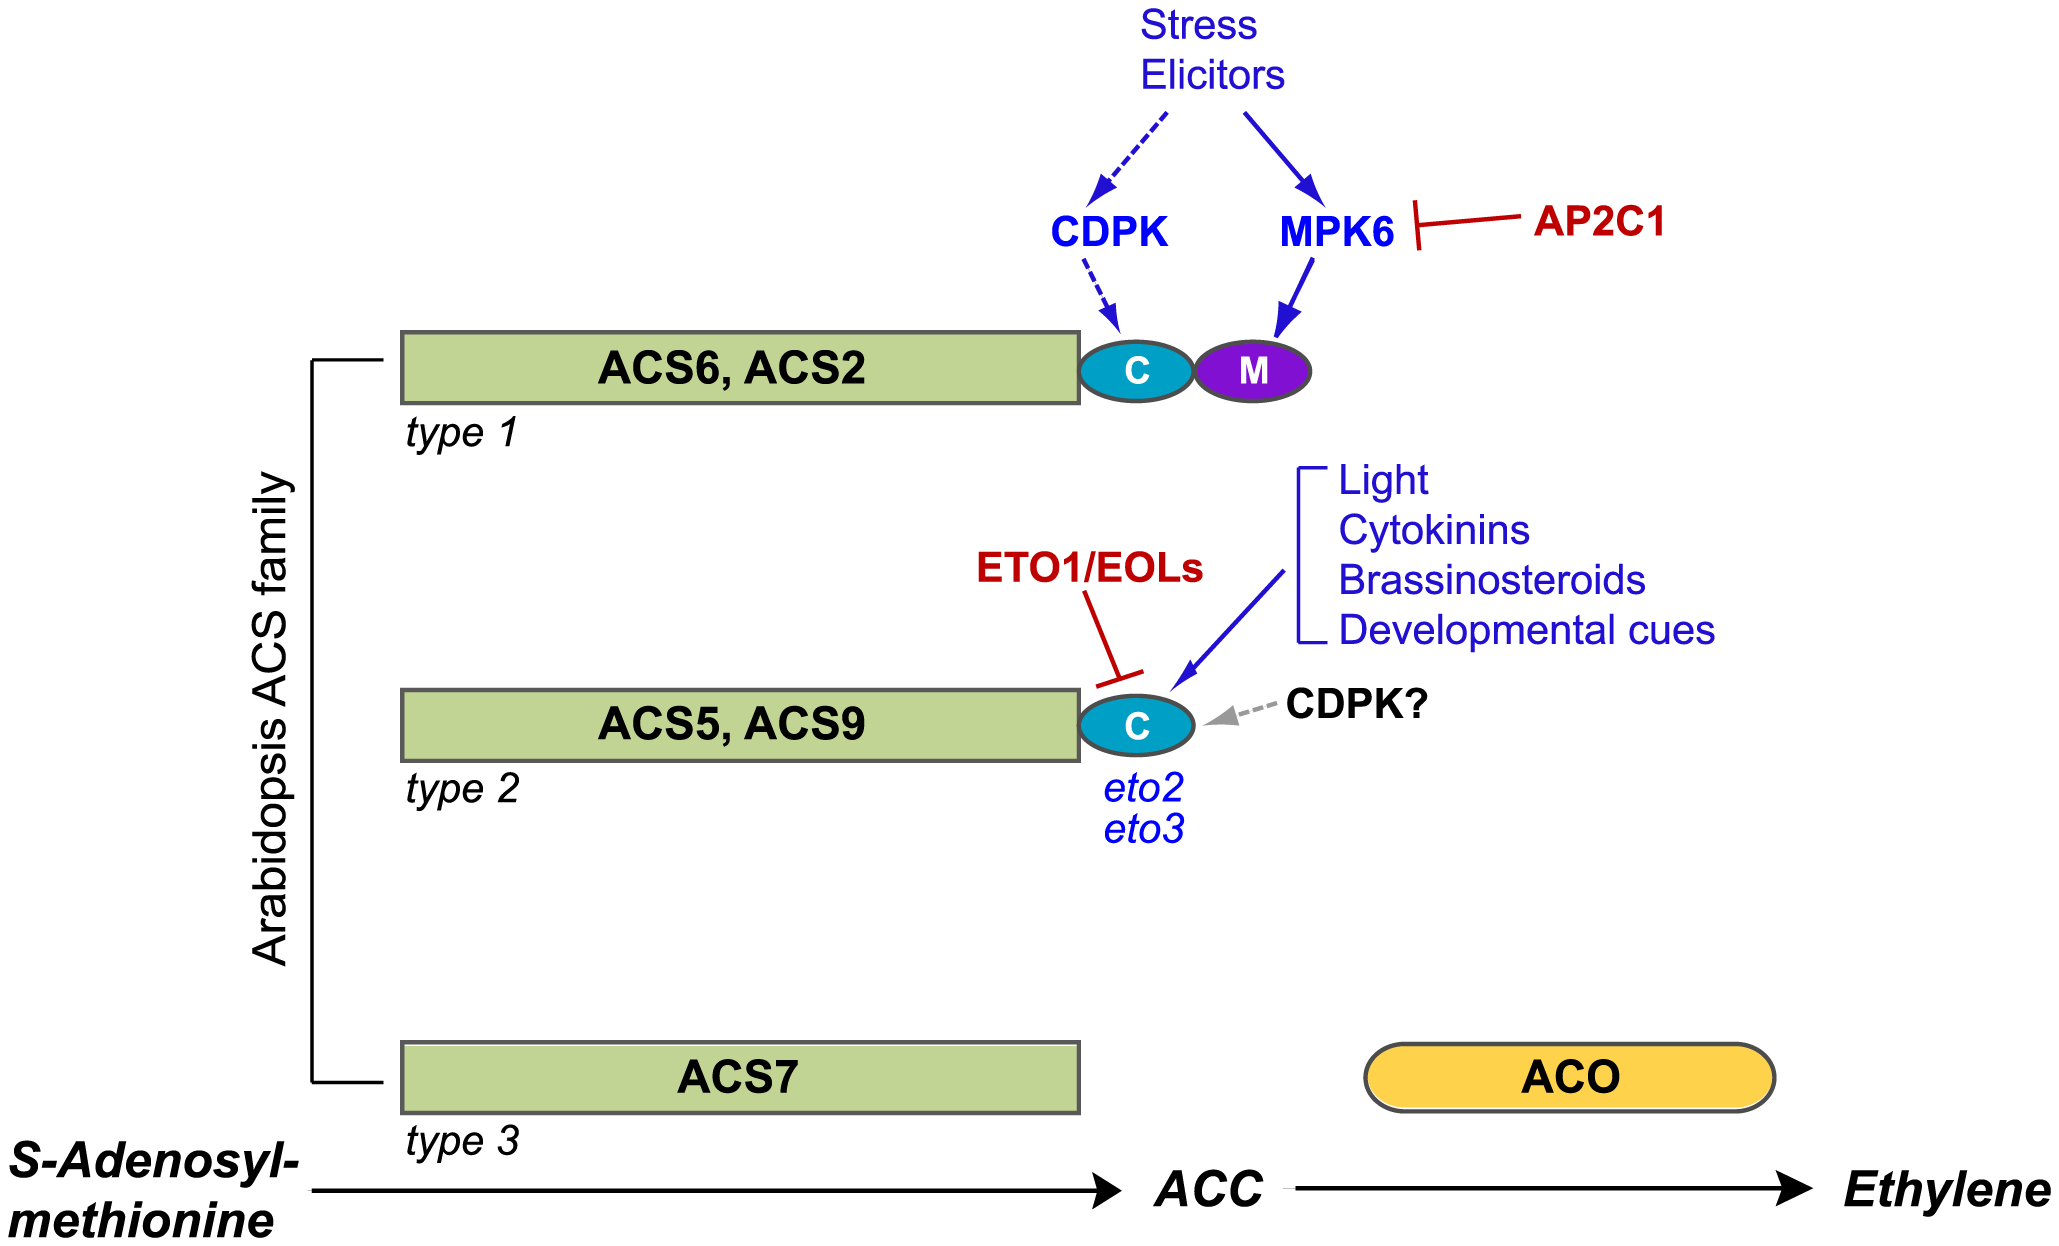 Post-translational modifications of ACS proteins regulate ethylene synthesis.